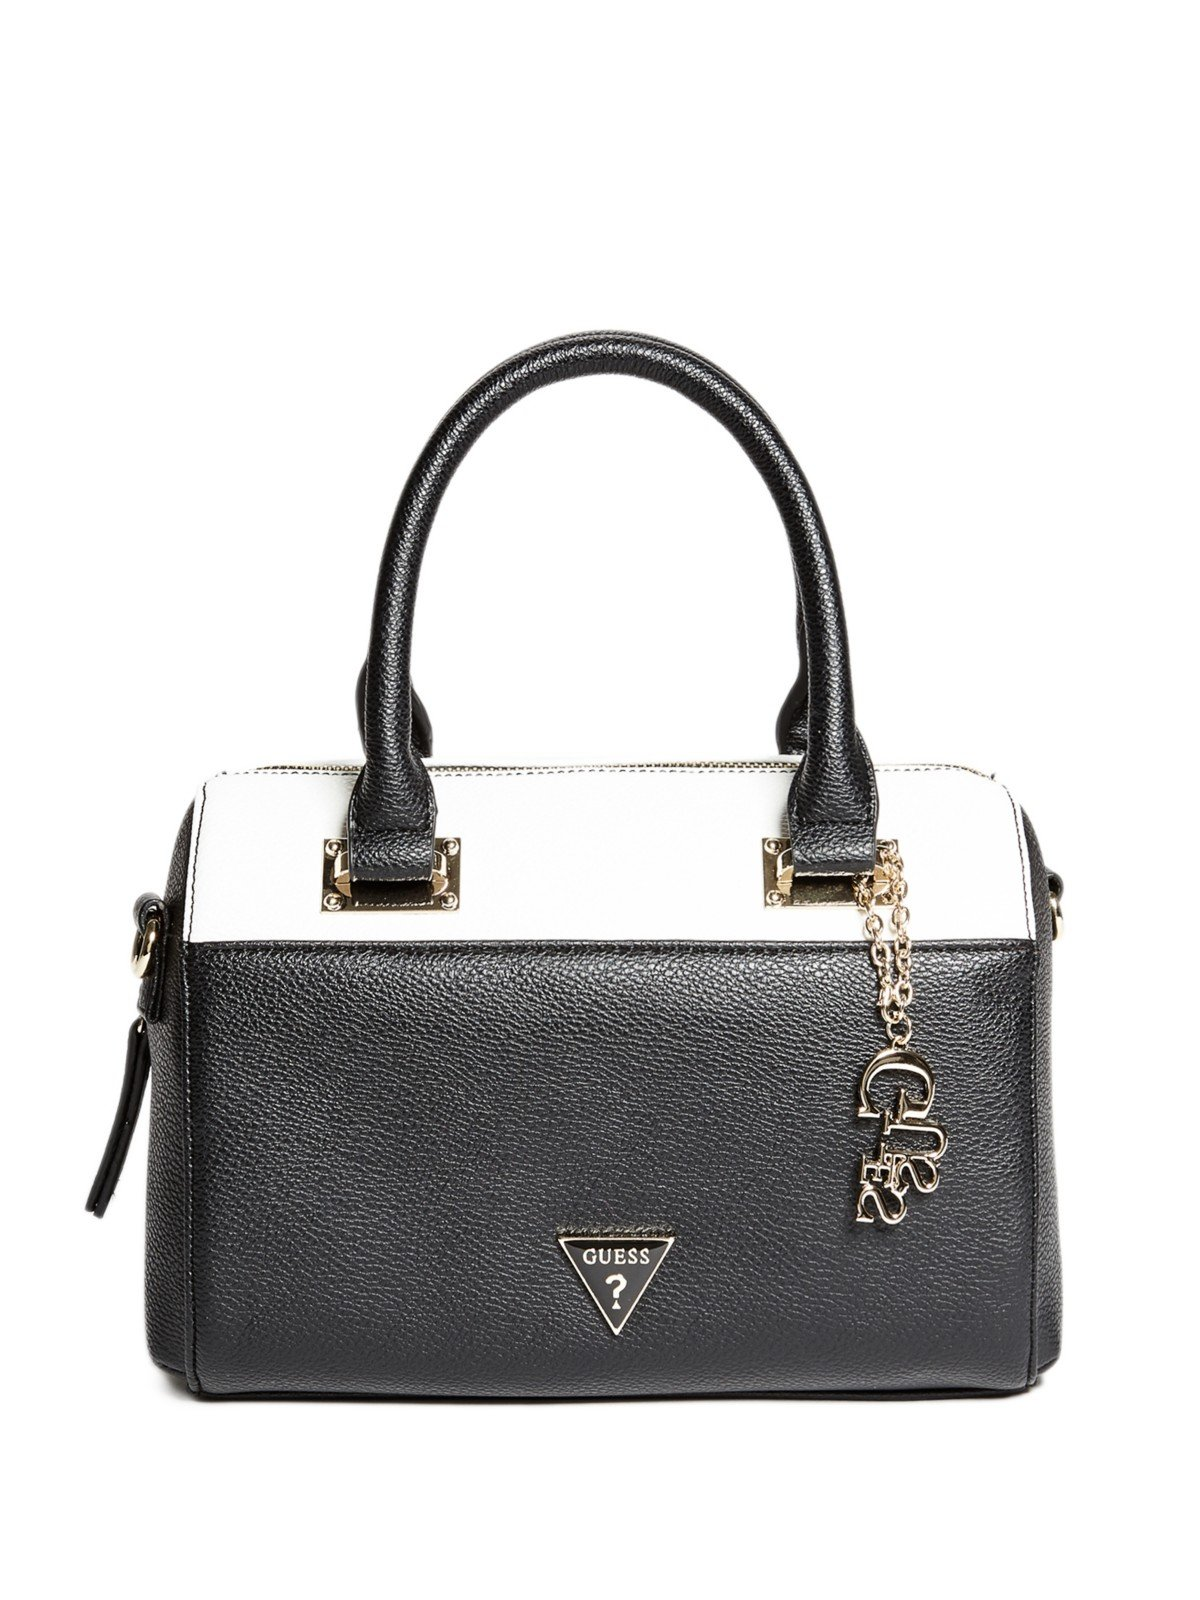 9df9580838e0 Get Quotations · GUESS Factory Women s Clara Dome Satchel